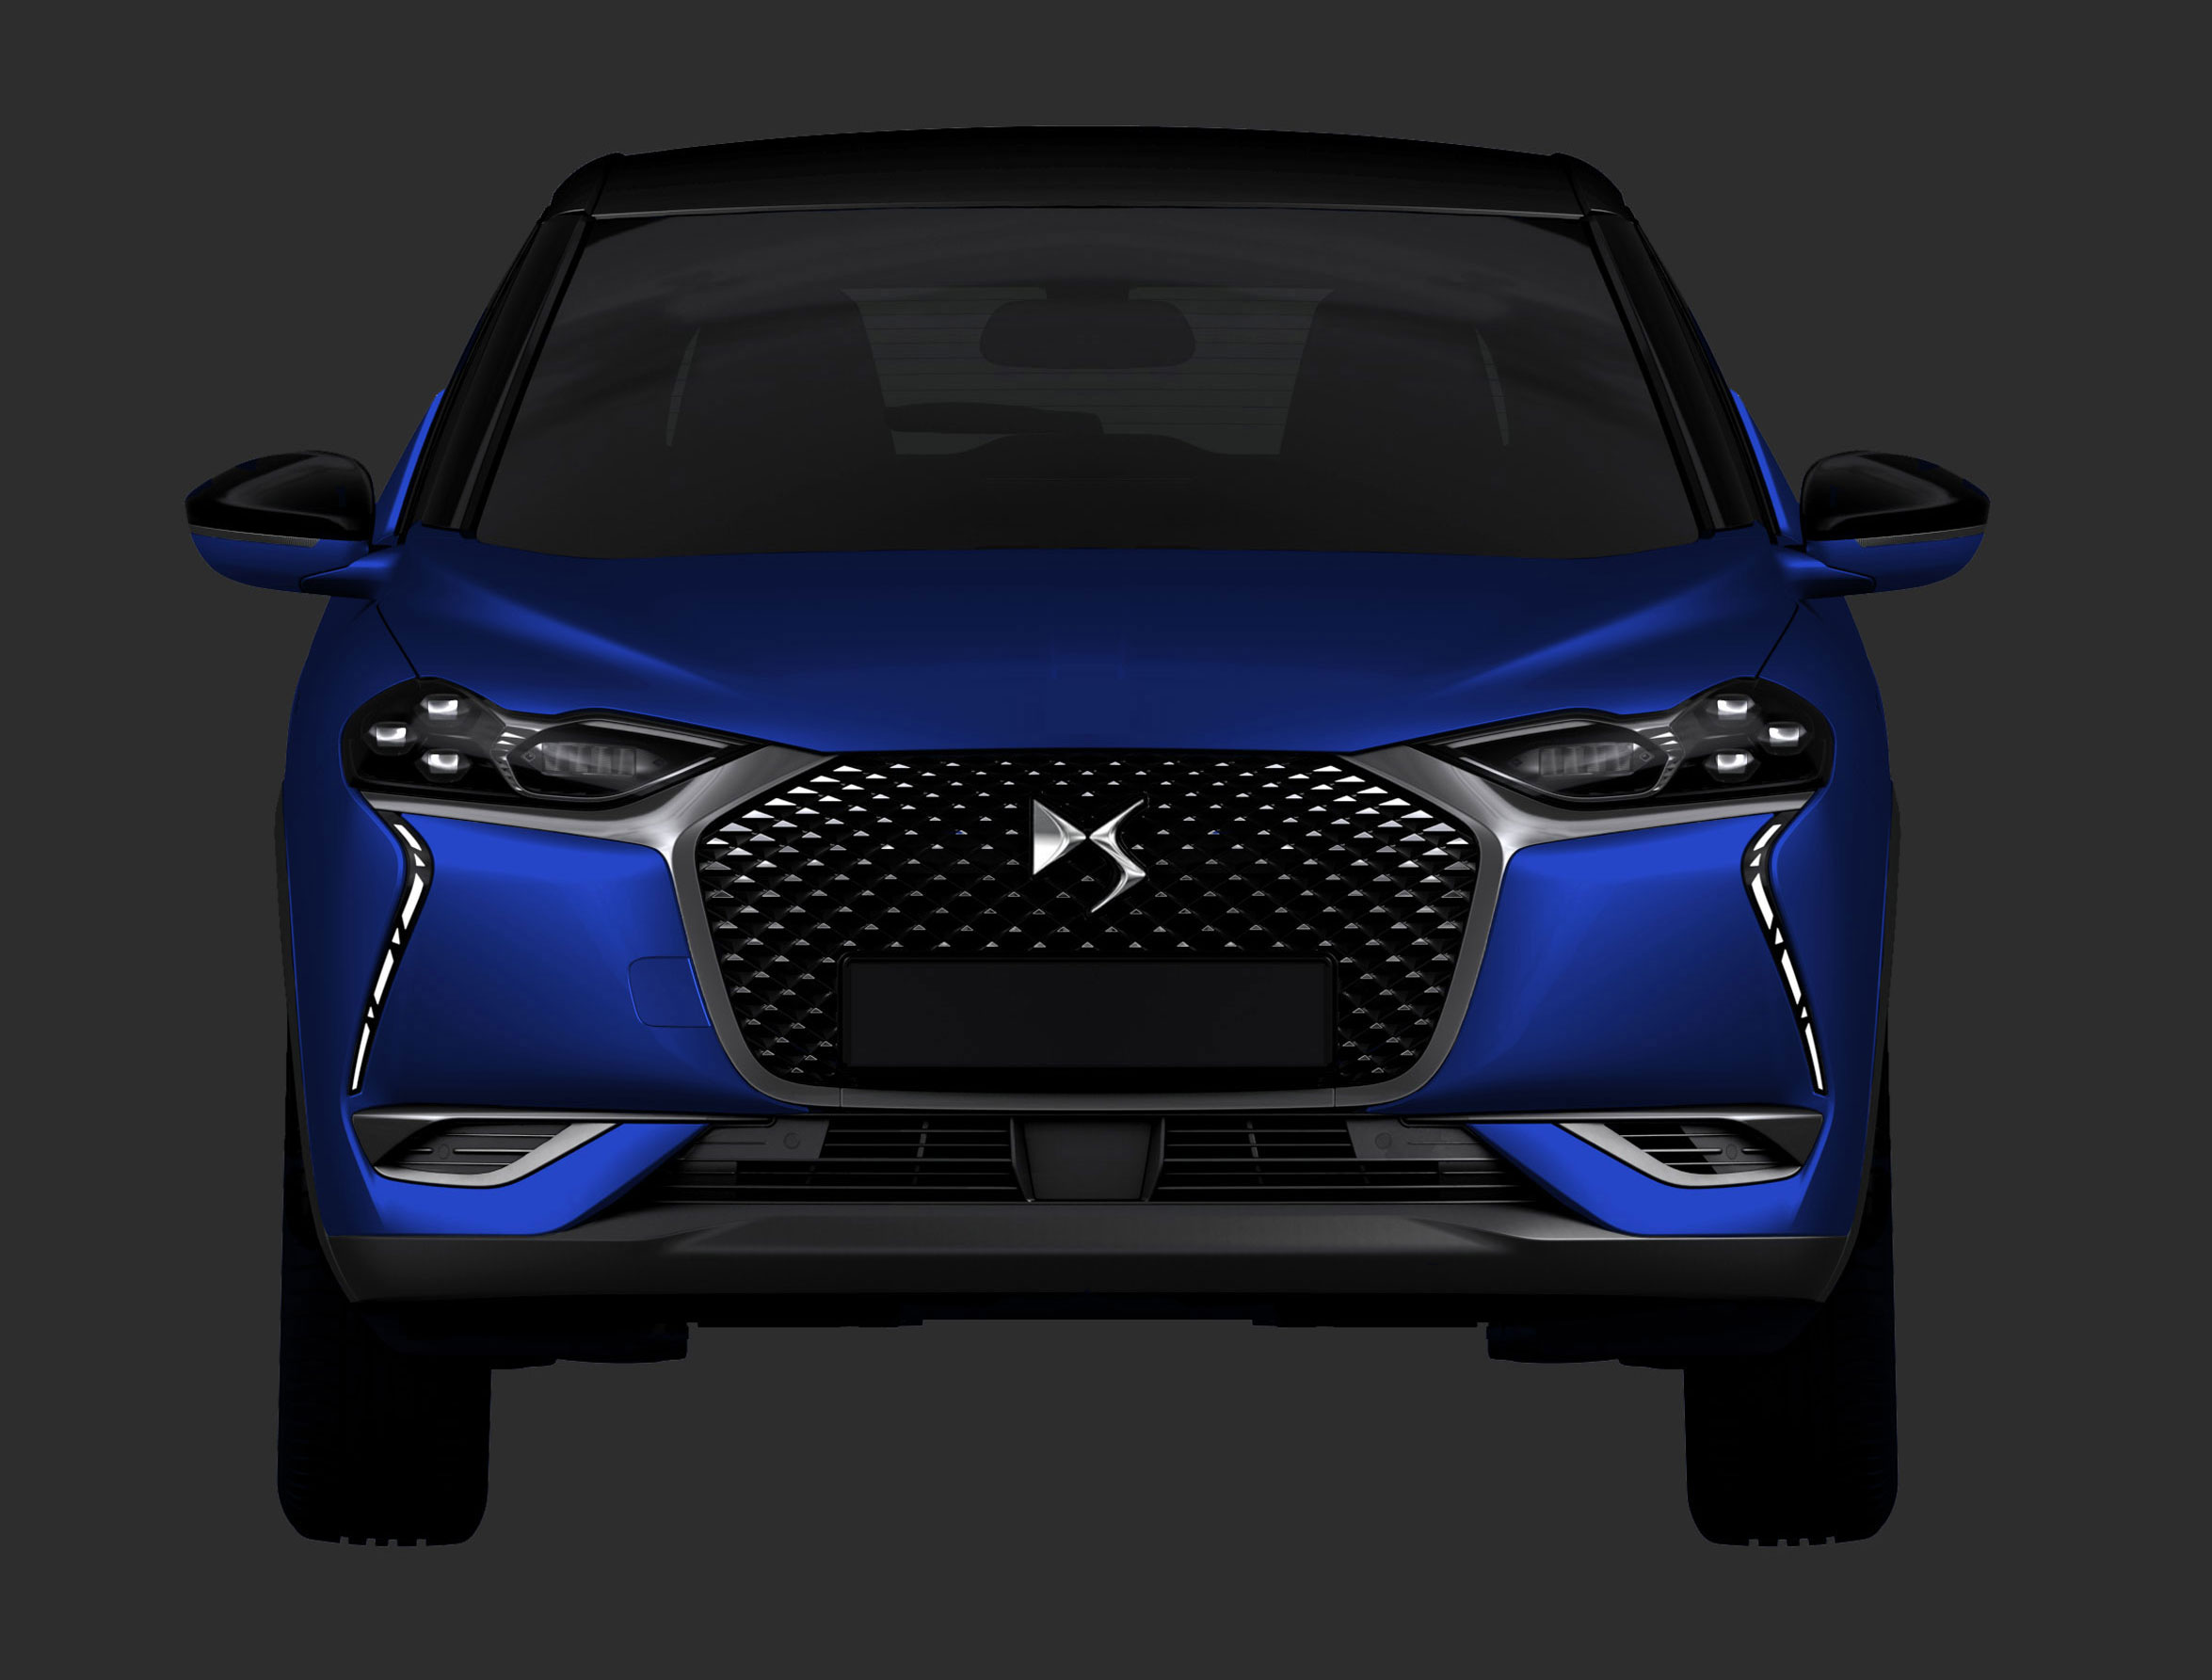 2019 Ds 3 Crossback Leaked By Design Patent Looks Exquisite Autoevolution